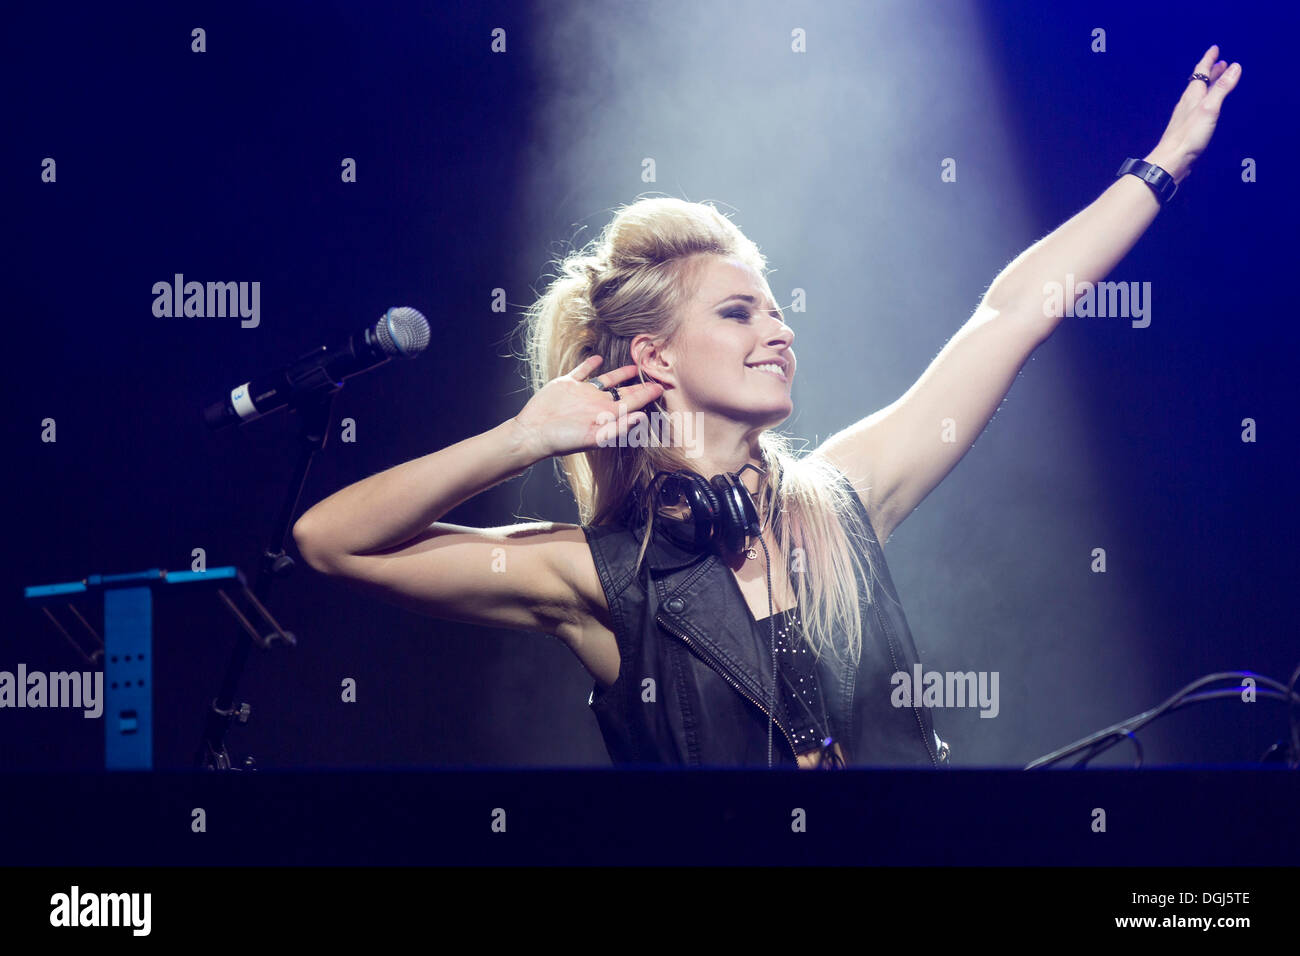 British DJ Krystal Roxx, the official DJ of the British R&B singer-songwriter Taio Cruz, performing live at Heitere Open Air in - Stock Image